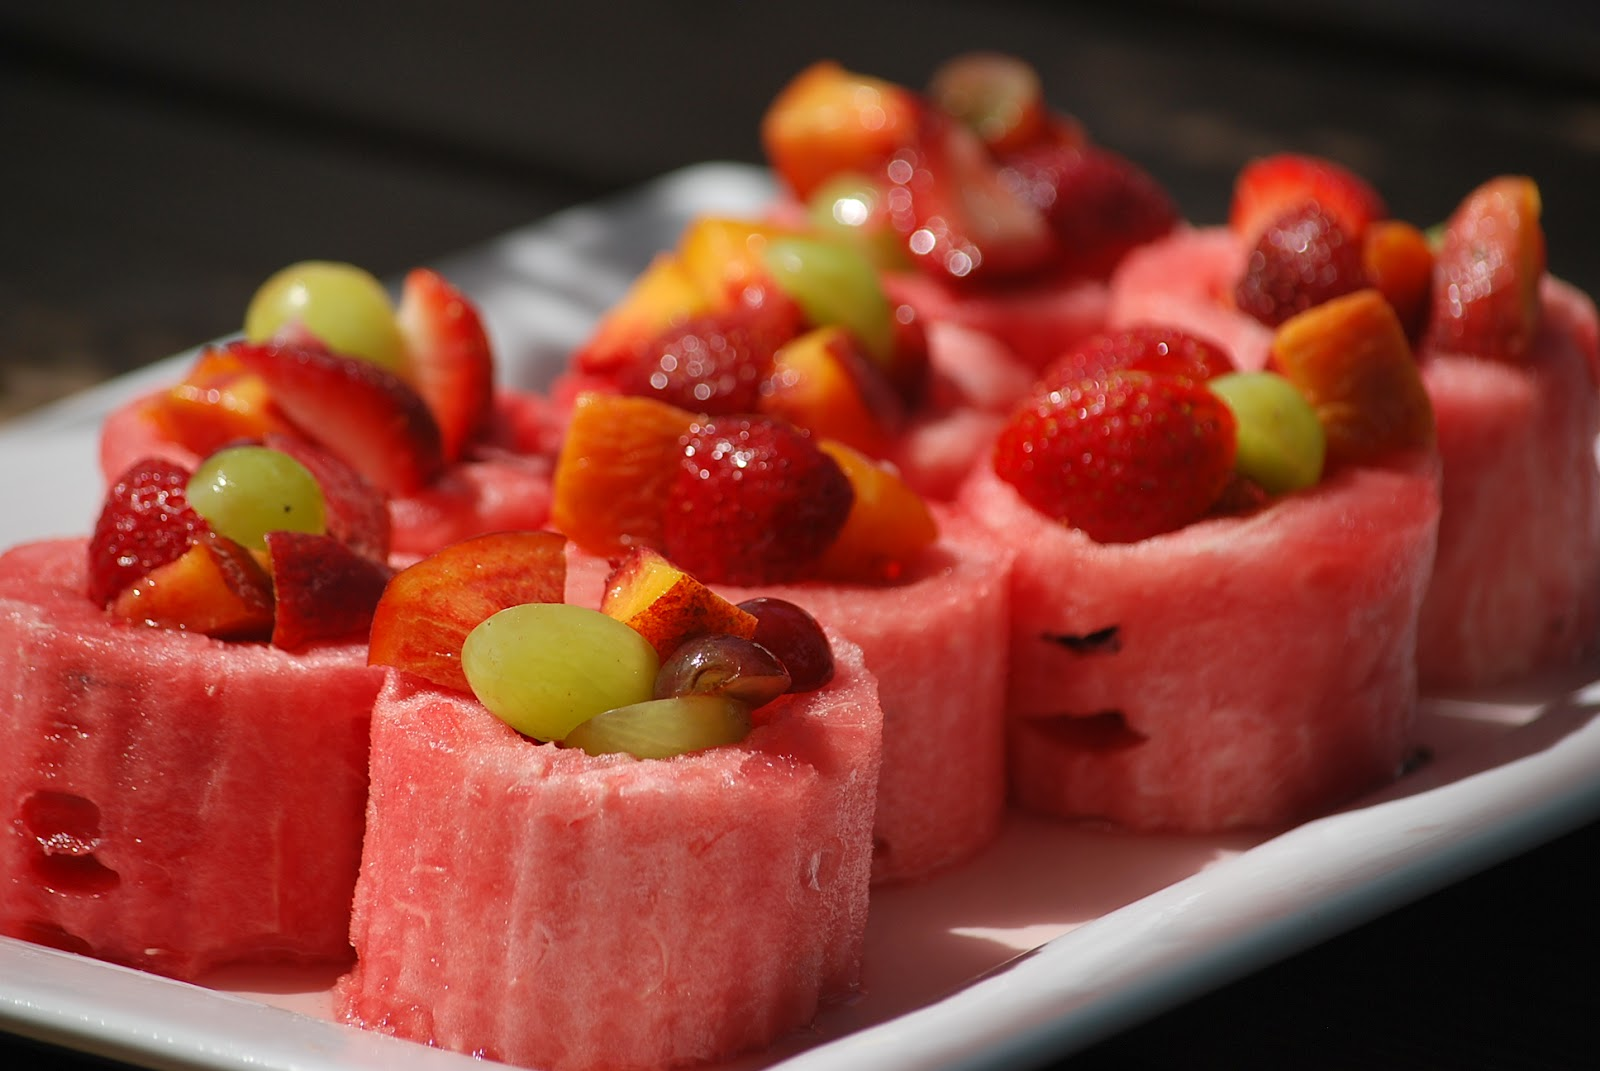 My story in recipes: Watermelon Cups and Watermelon Cape Cod